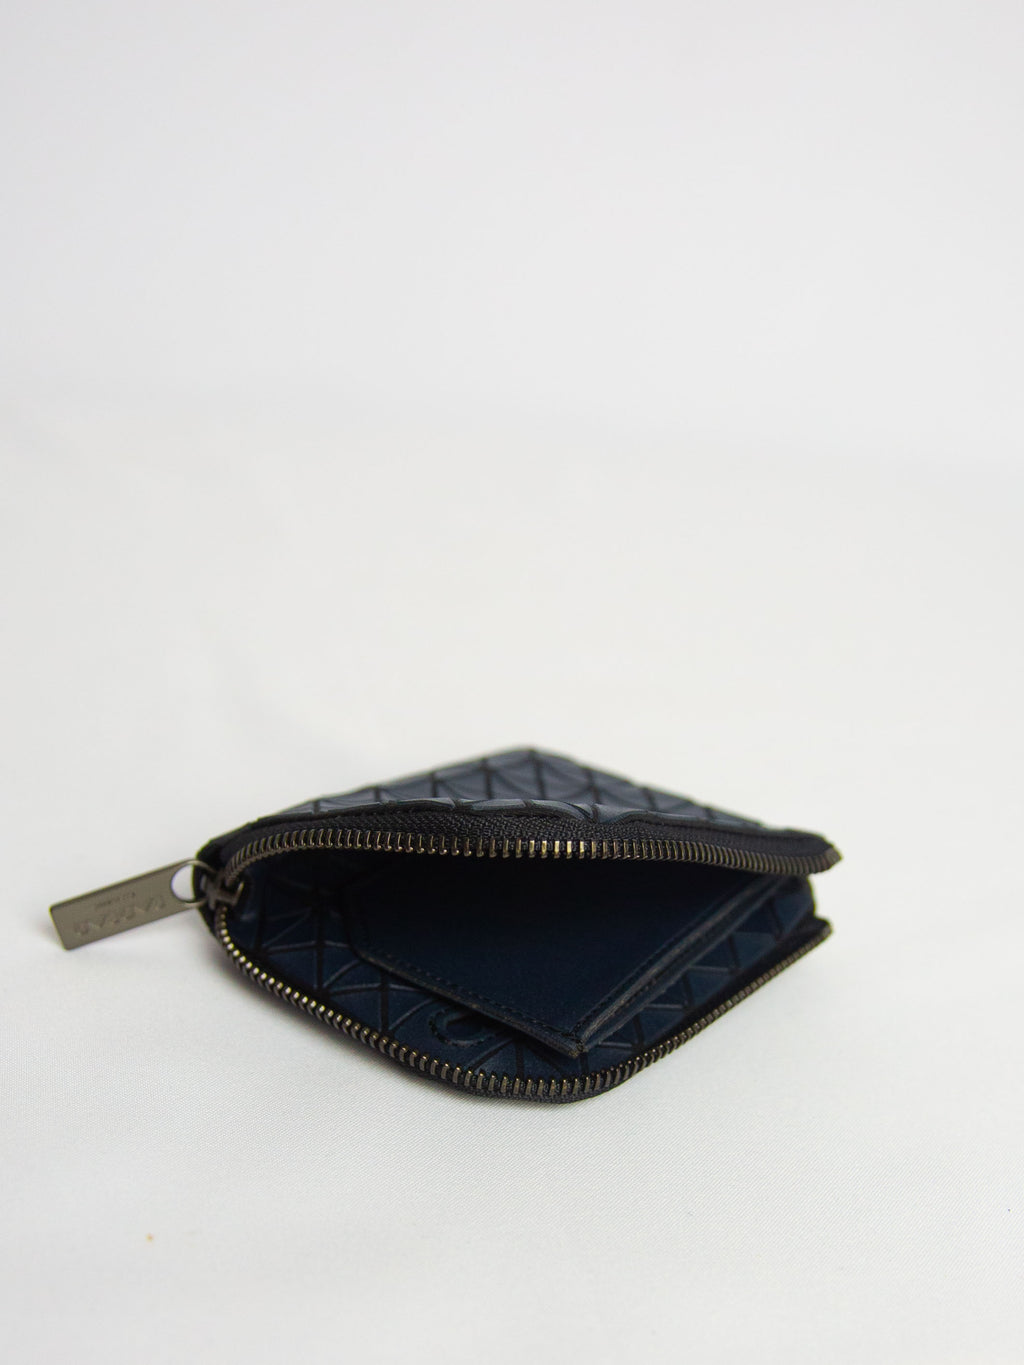 Kuro Clam Wallet - Navy